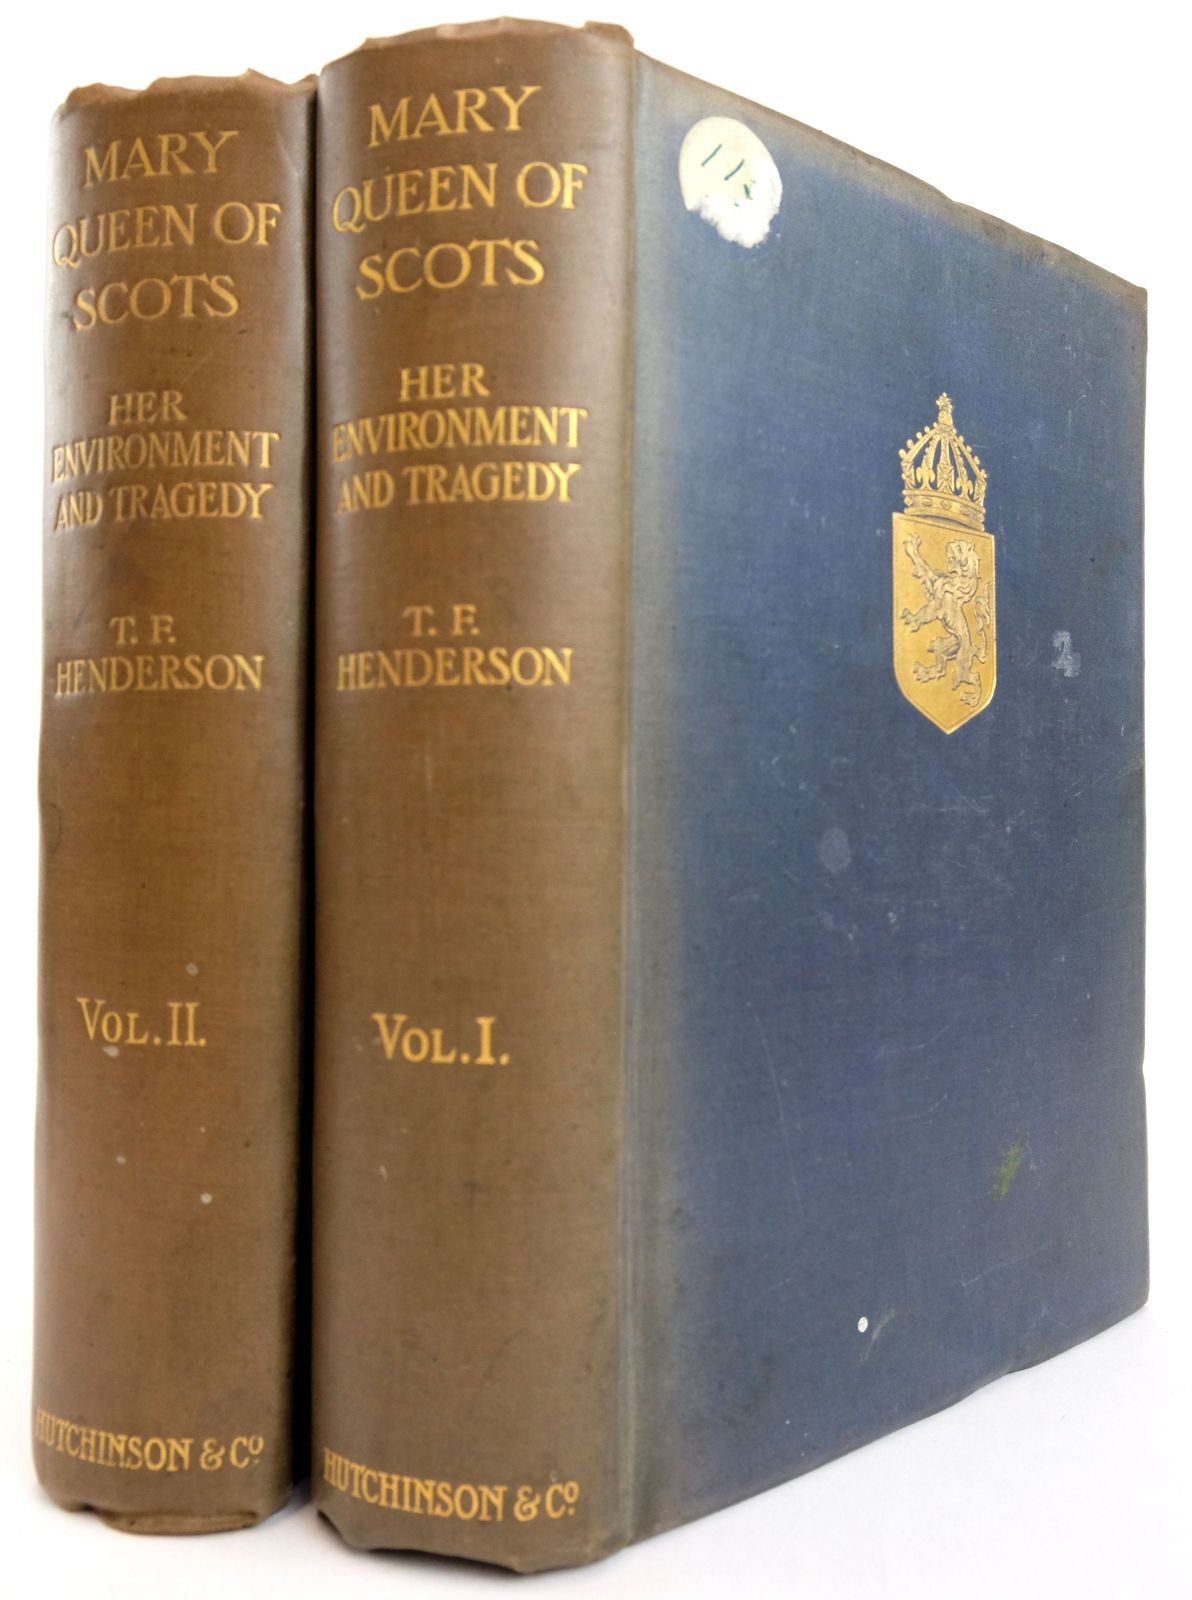 Photo of MARY QUEEN OF SCOTS: HER ENVIRONMENT AND TRAGEDY (2 VOLUMES) written by Henderson, T.F. published by Hutchinson & Co. (STOCK CODE: 1819232)  for sale by Stella & Rose's Books